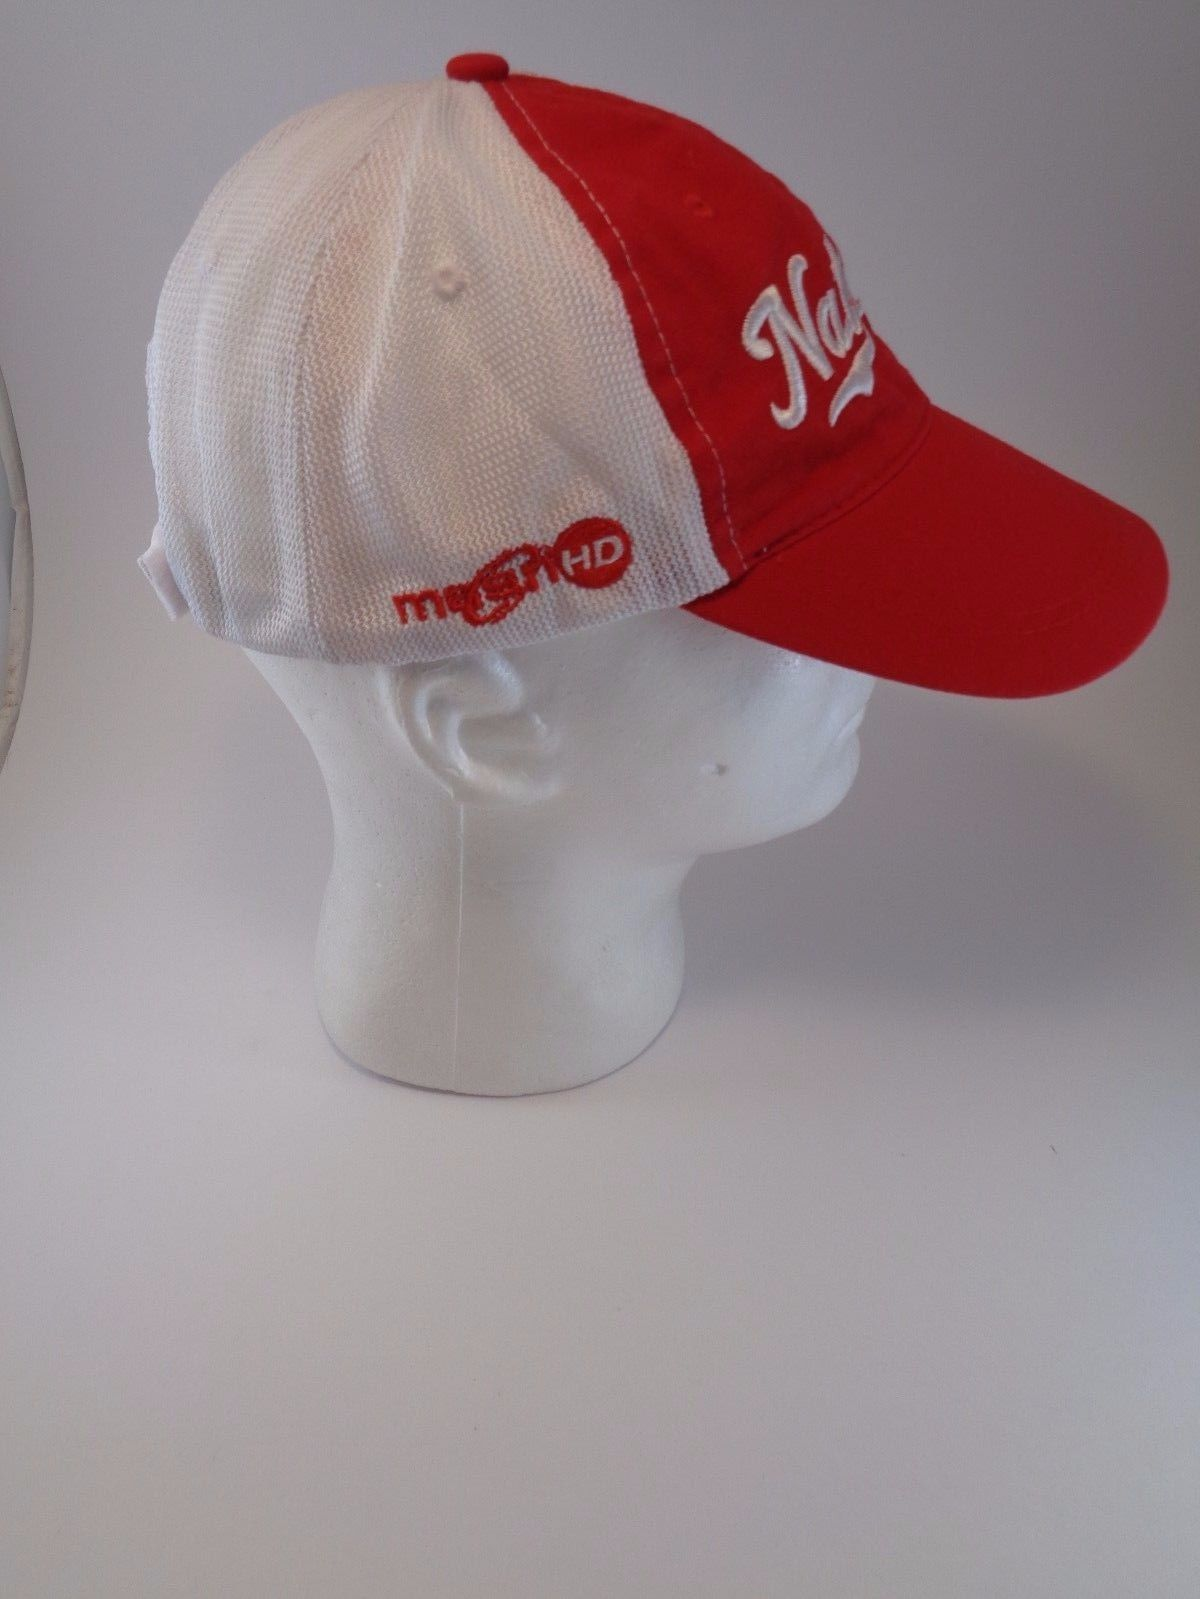 separation shoes 6b9d7 977a2 promo code for washington nationals mlb baseball red white trucker promo hat  cap one size masn